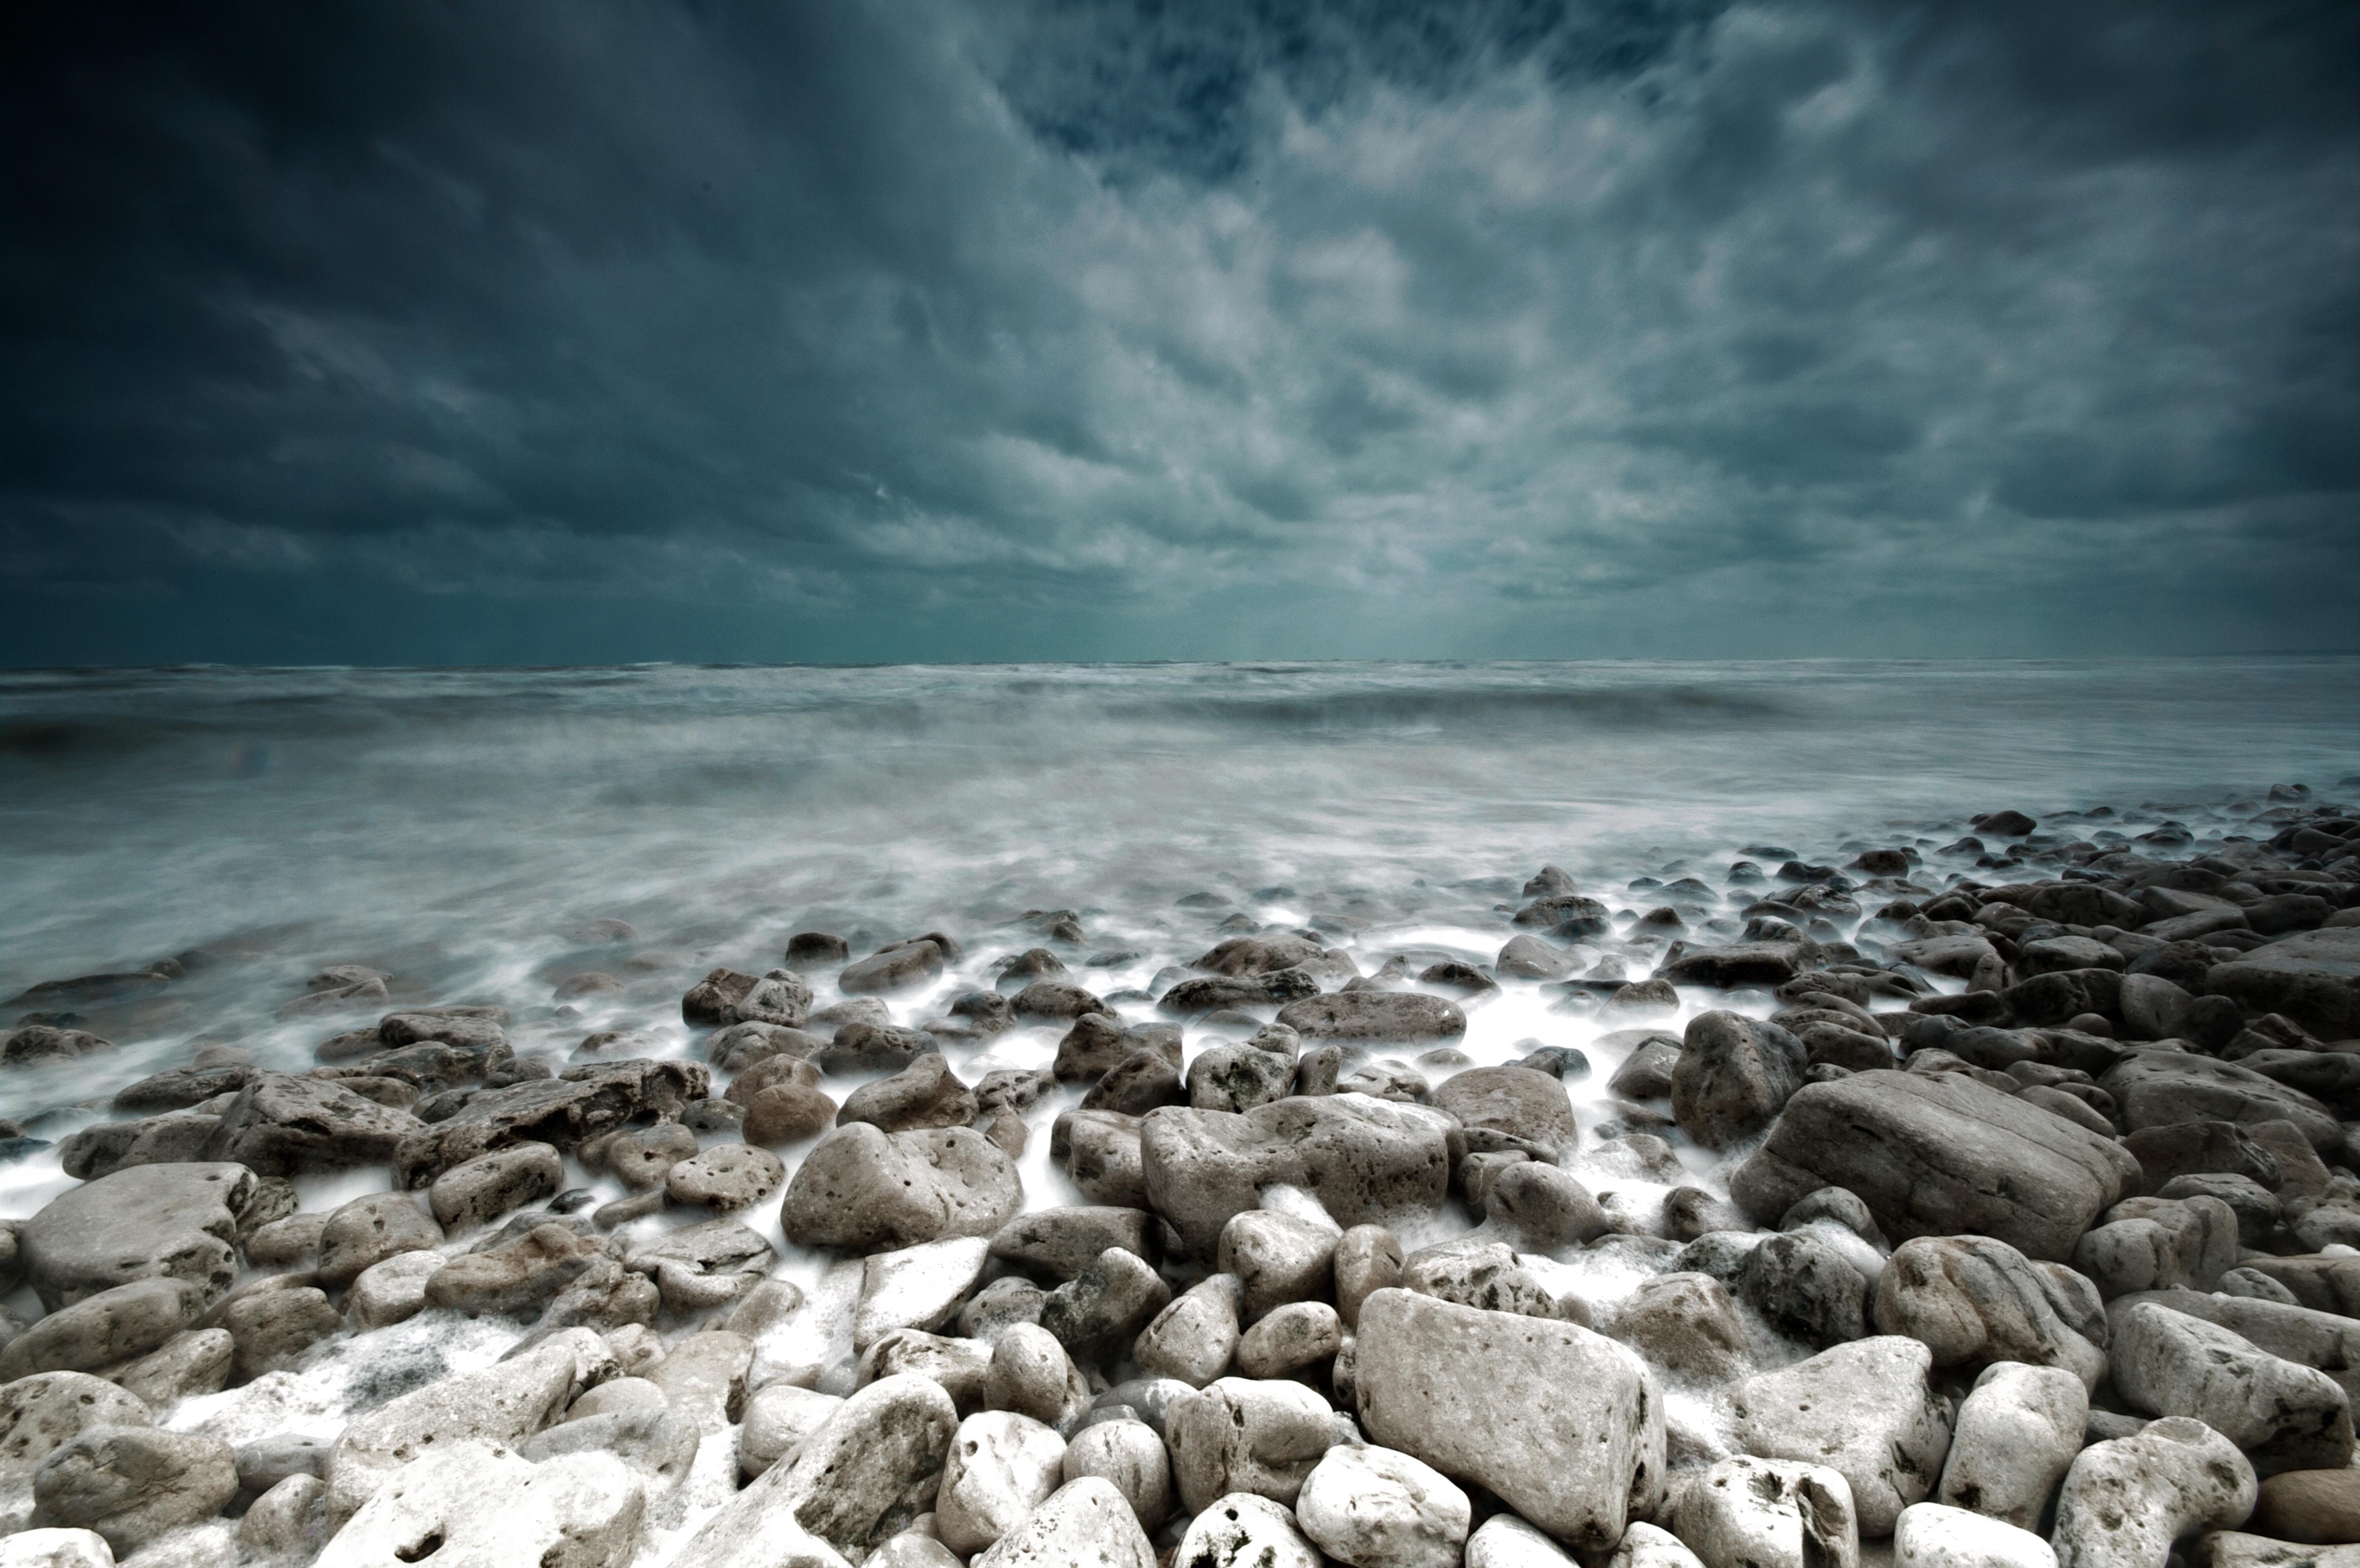 54309 download wallpaper Landscape, Nature, Stones, Sea, Shore, Bank, Gloomy screensavers and pictures for free